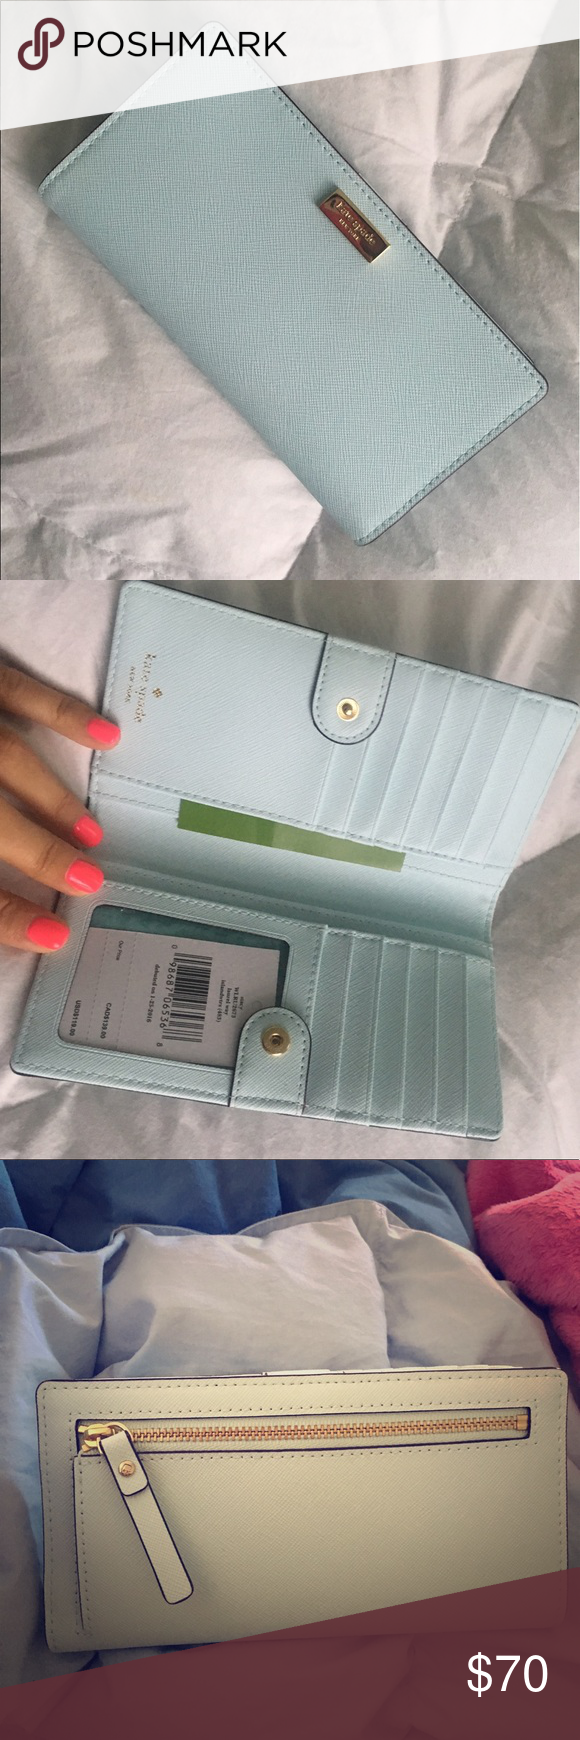 """Kate Spade Stacy Laurel Way Wallet Color: Island waters. Brand new with tags. Originally $119.00. Approximately 3.5"""" X 6.75"""". kate spade Bags Wallets"""